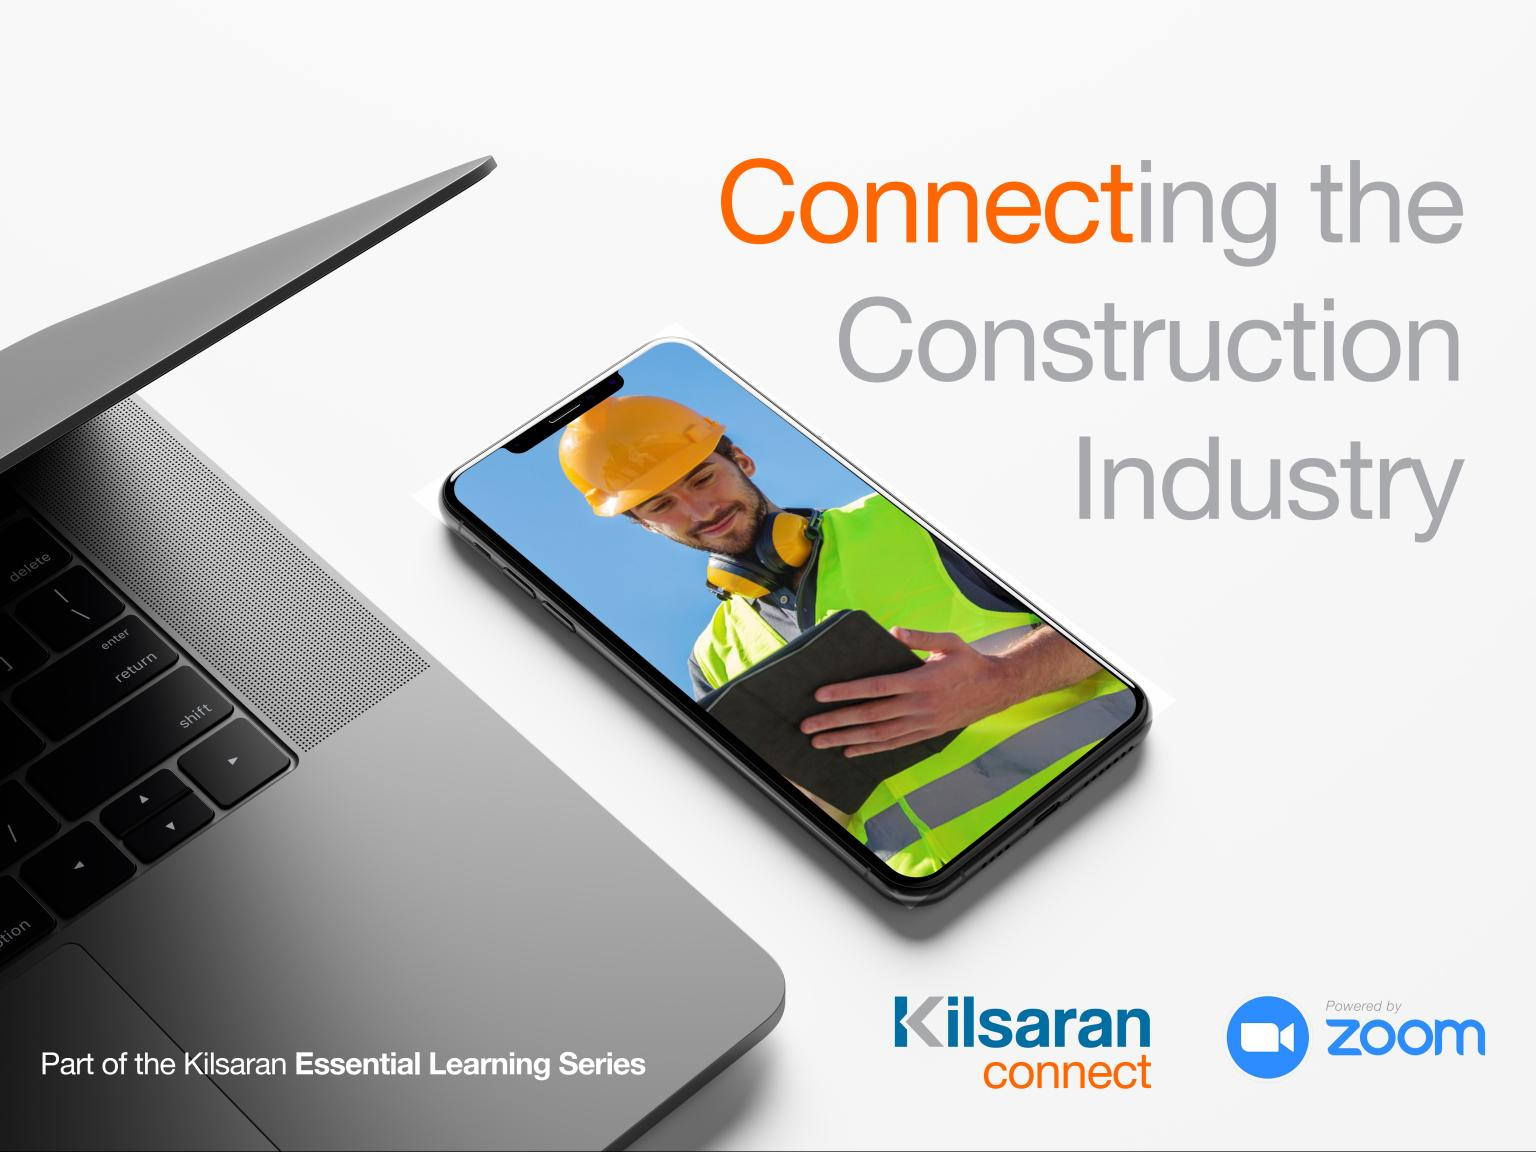 Kilsaran Connect Essential Learning Series